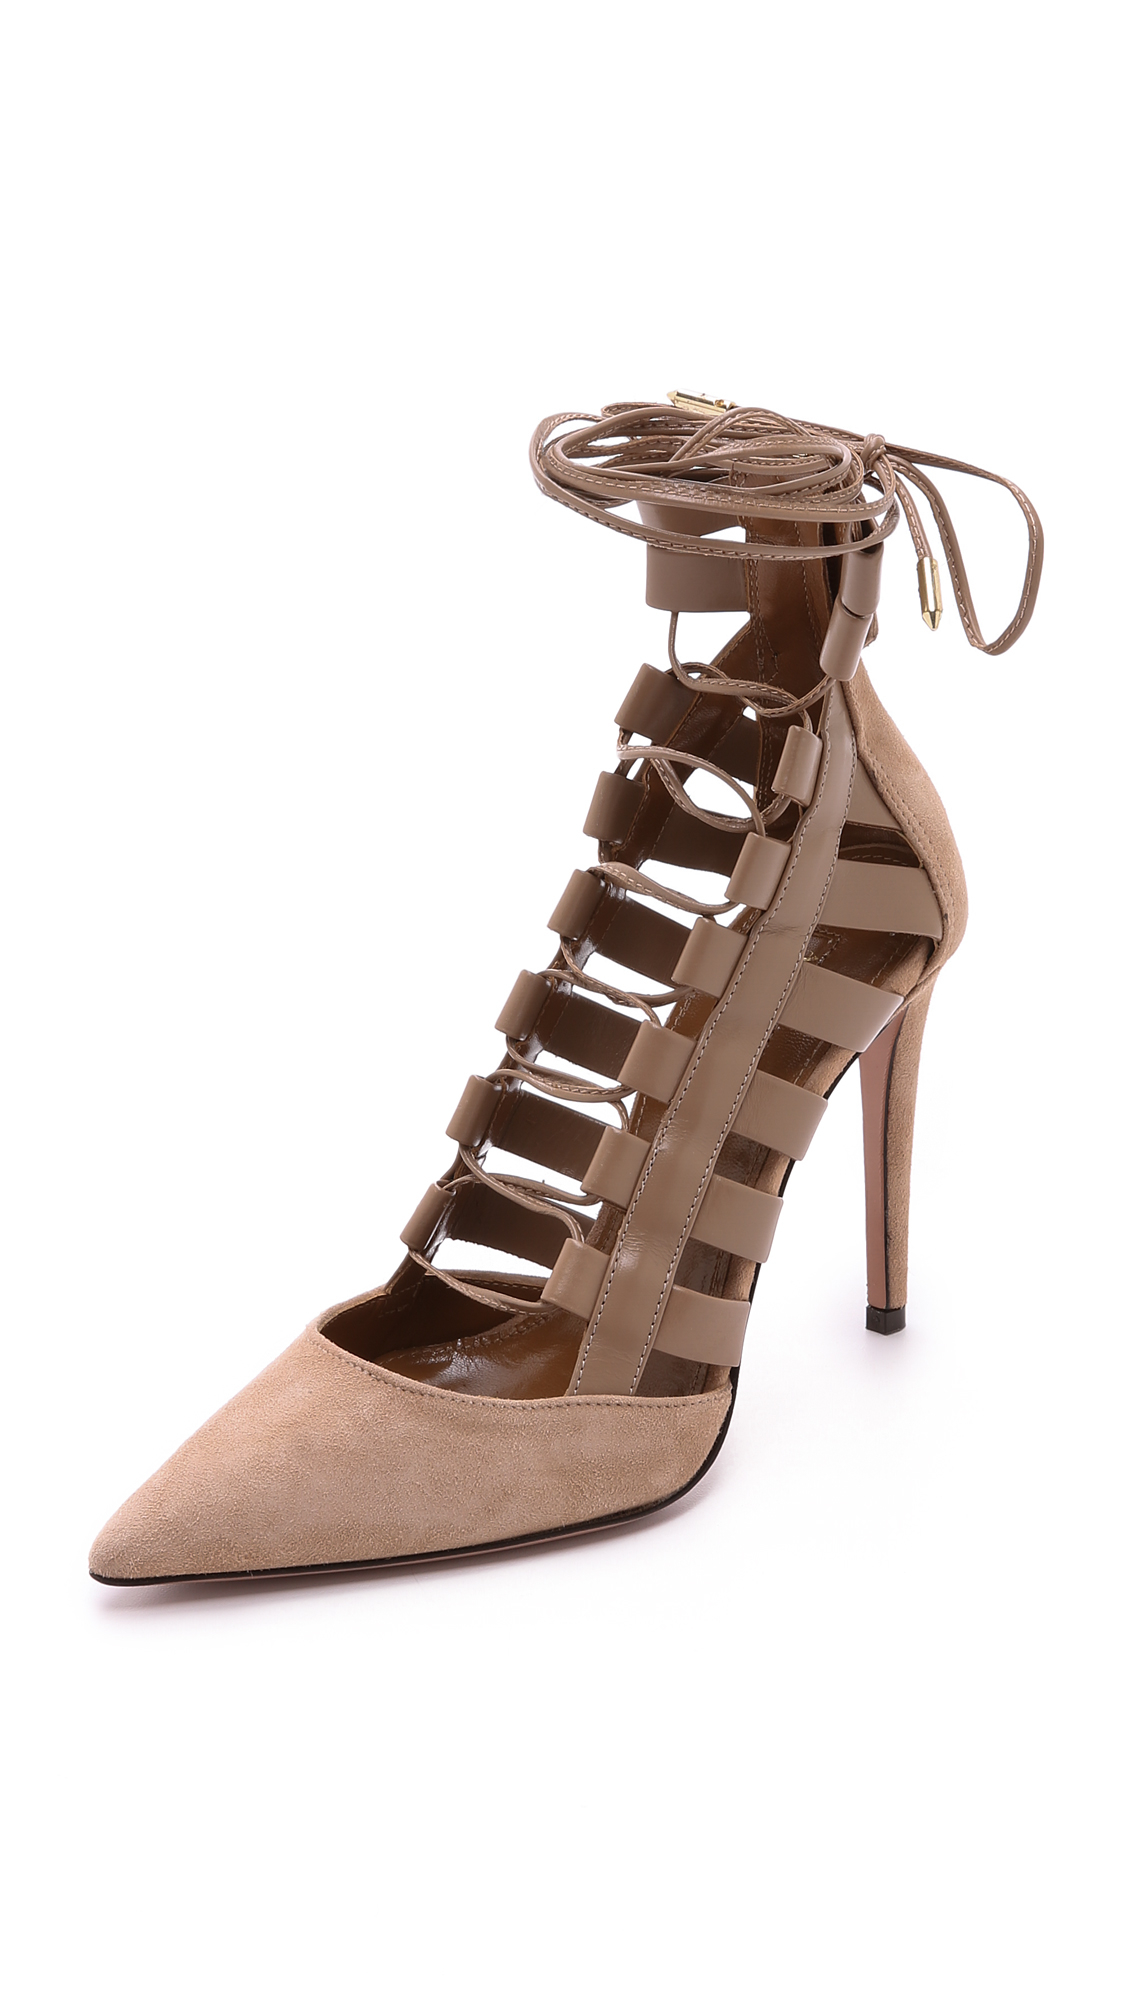 68e9025f023 Aquazzura Amazon Suede and Leather Lace-Up Pumps in Natural - Lyst